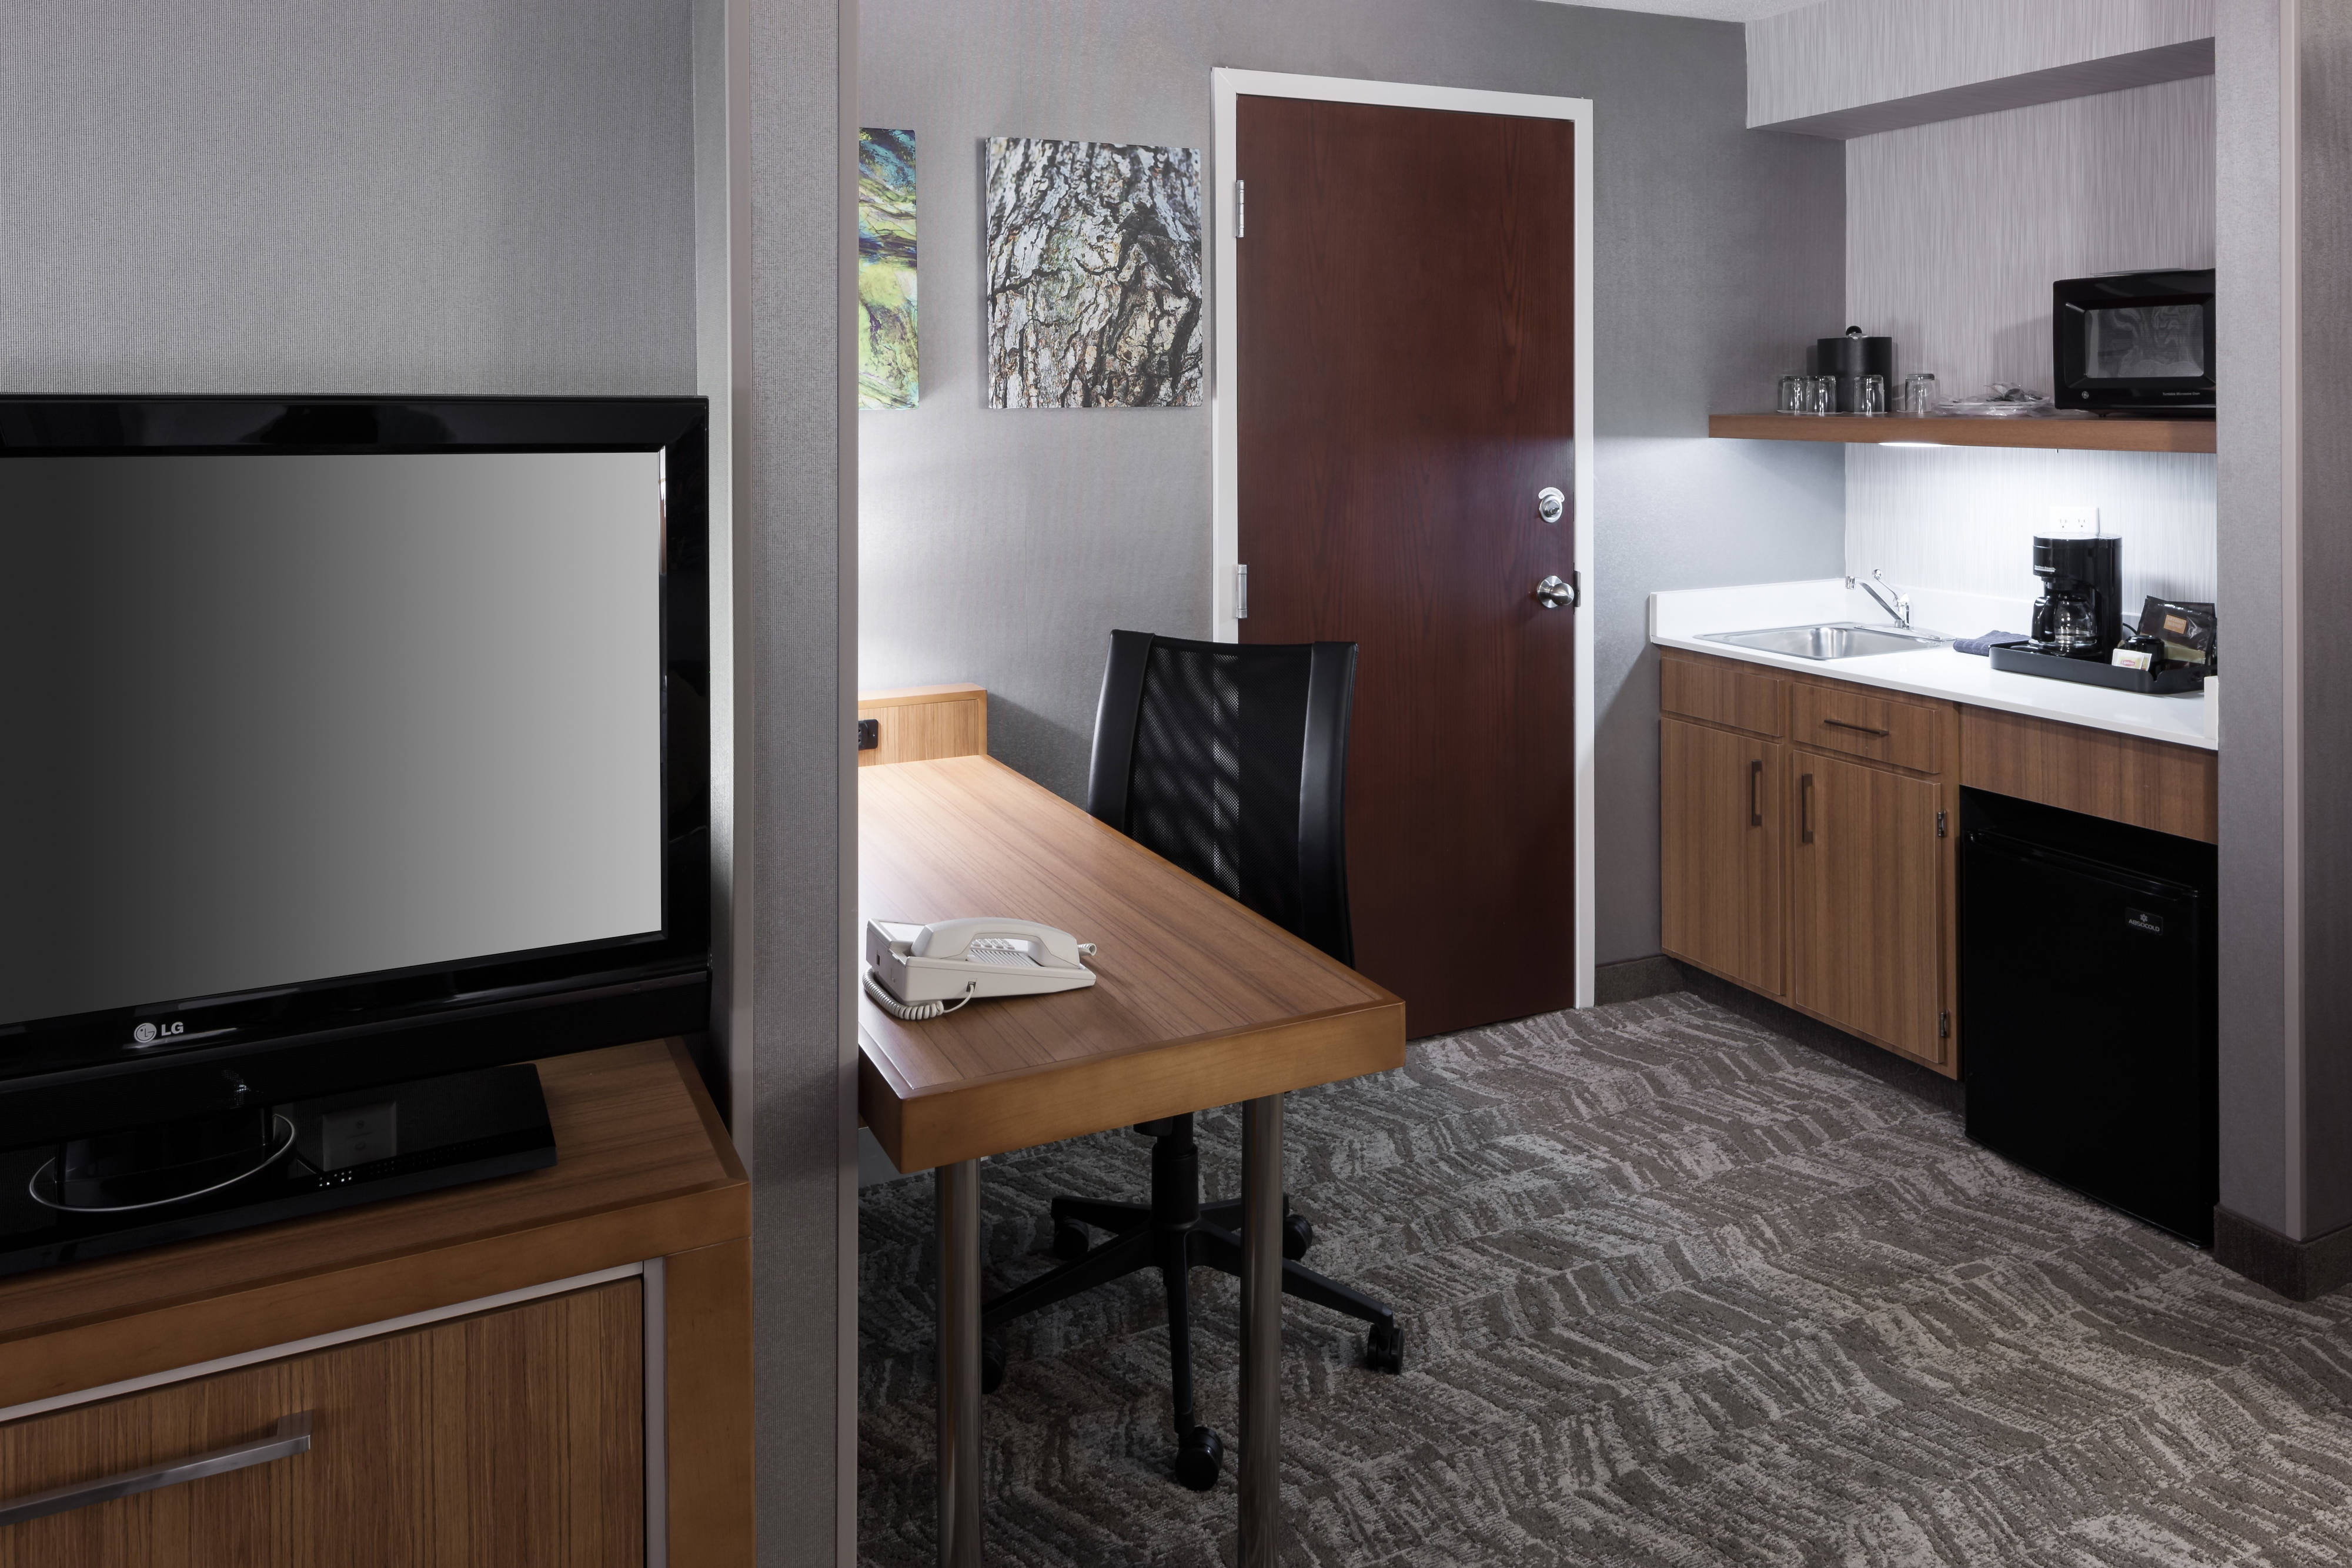 work desk/wetbar SpringHill Suites Boise ParkCenter